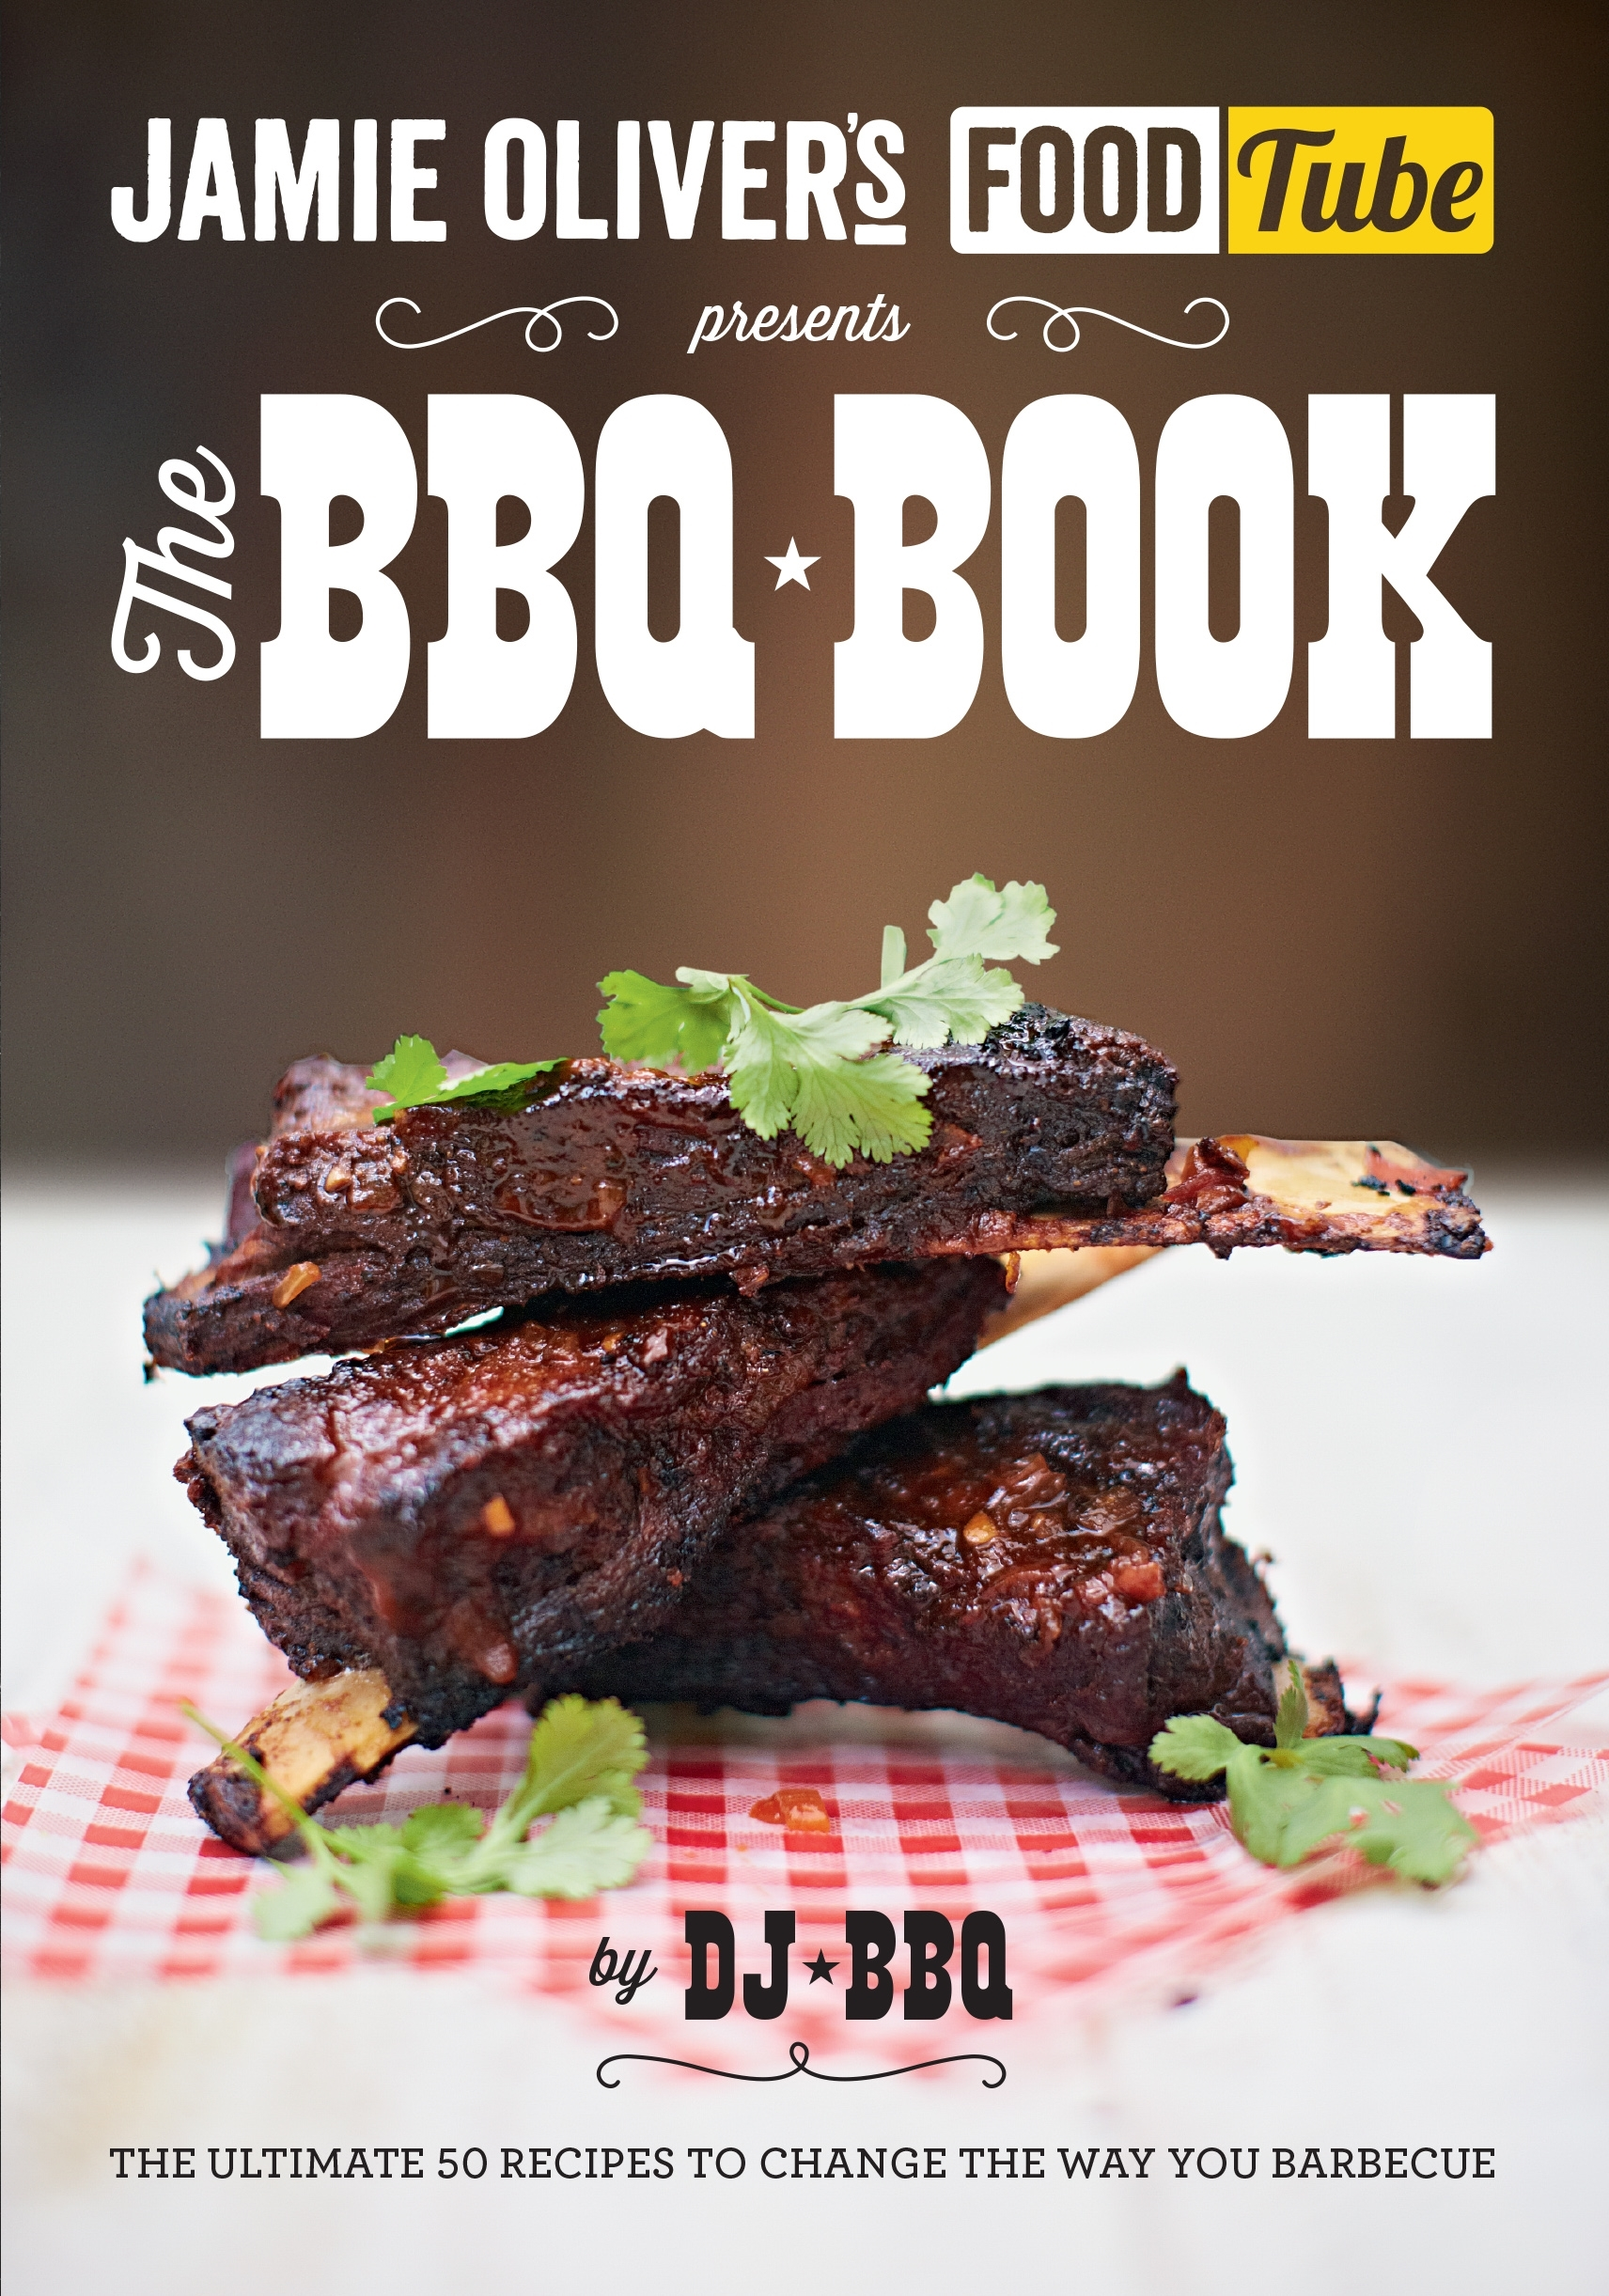 Food Book Cover Yelp ~ Jamie oliver s food tube the bbq book penguin books